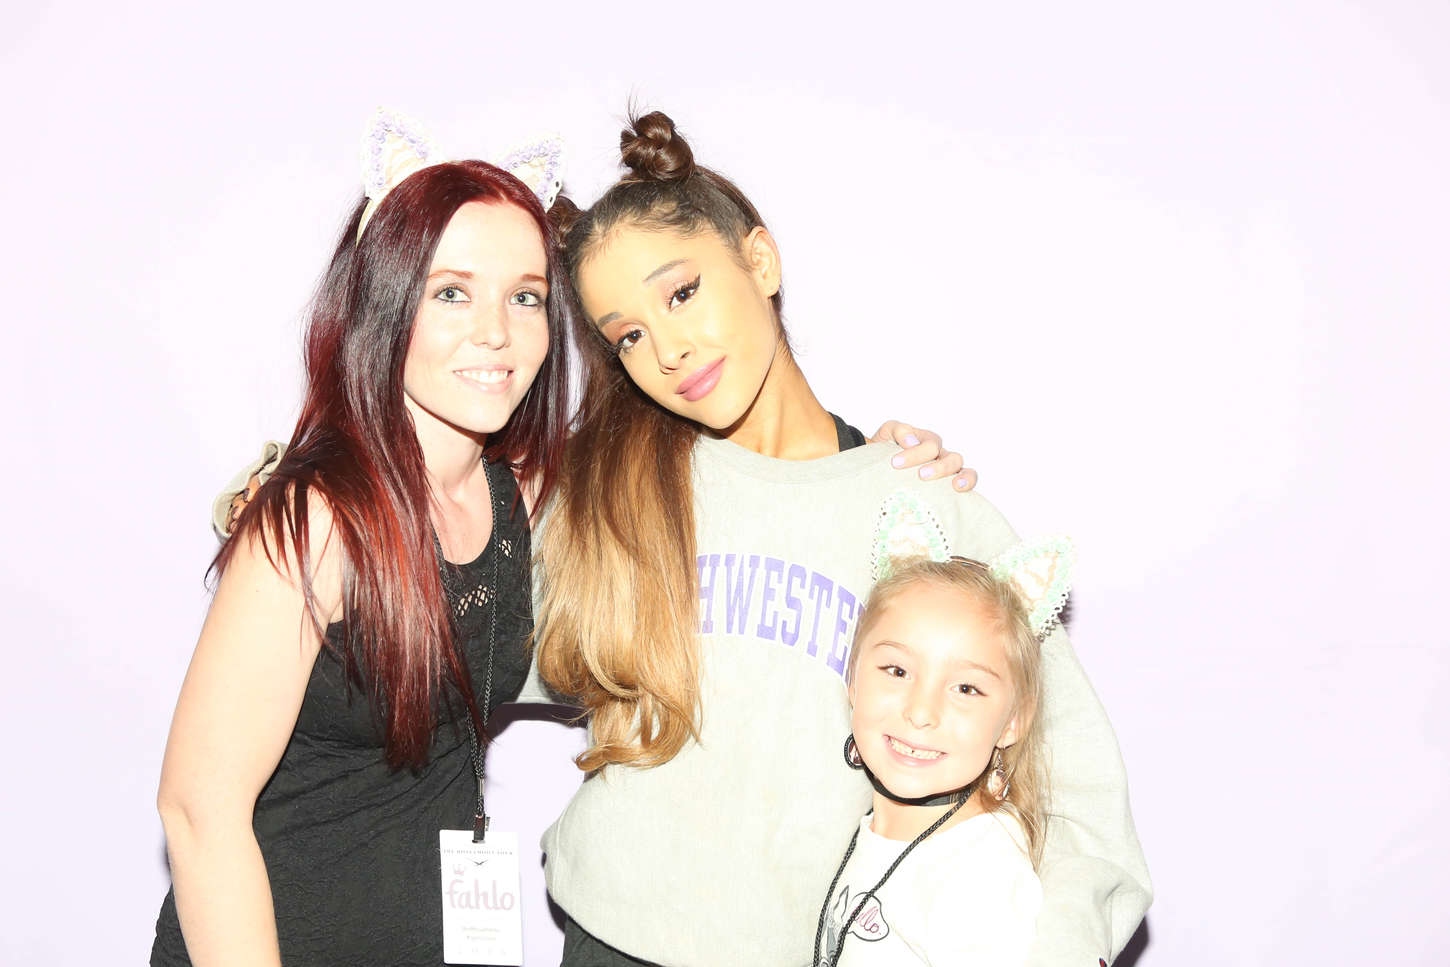 Ariana grande meet and greet in boise 17 gotceleb ariana grande meet and greet in boise 17 m4hsunfo